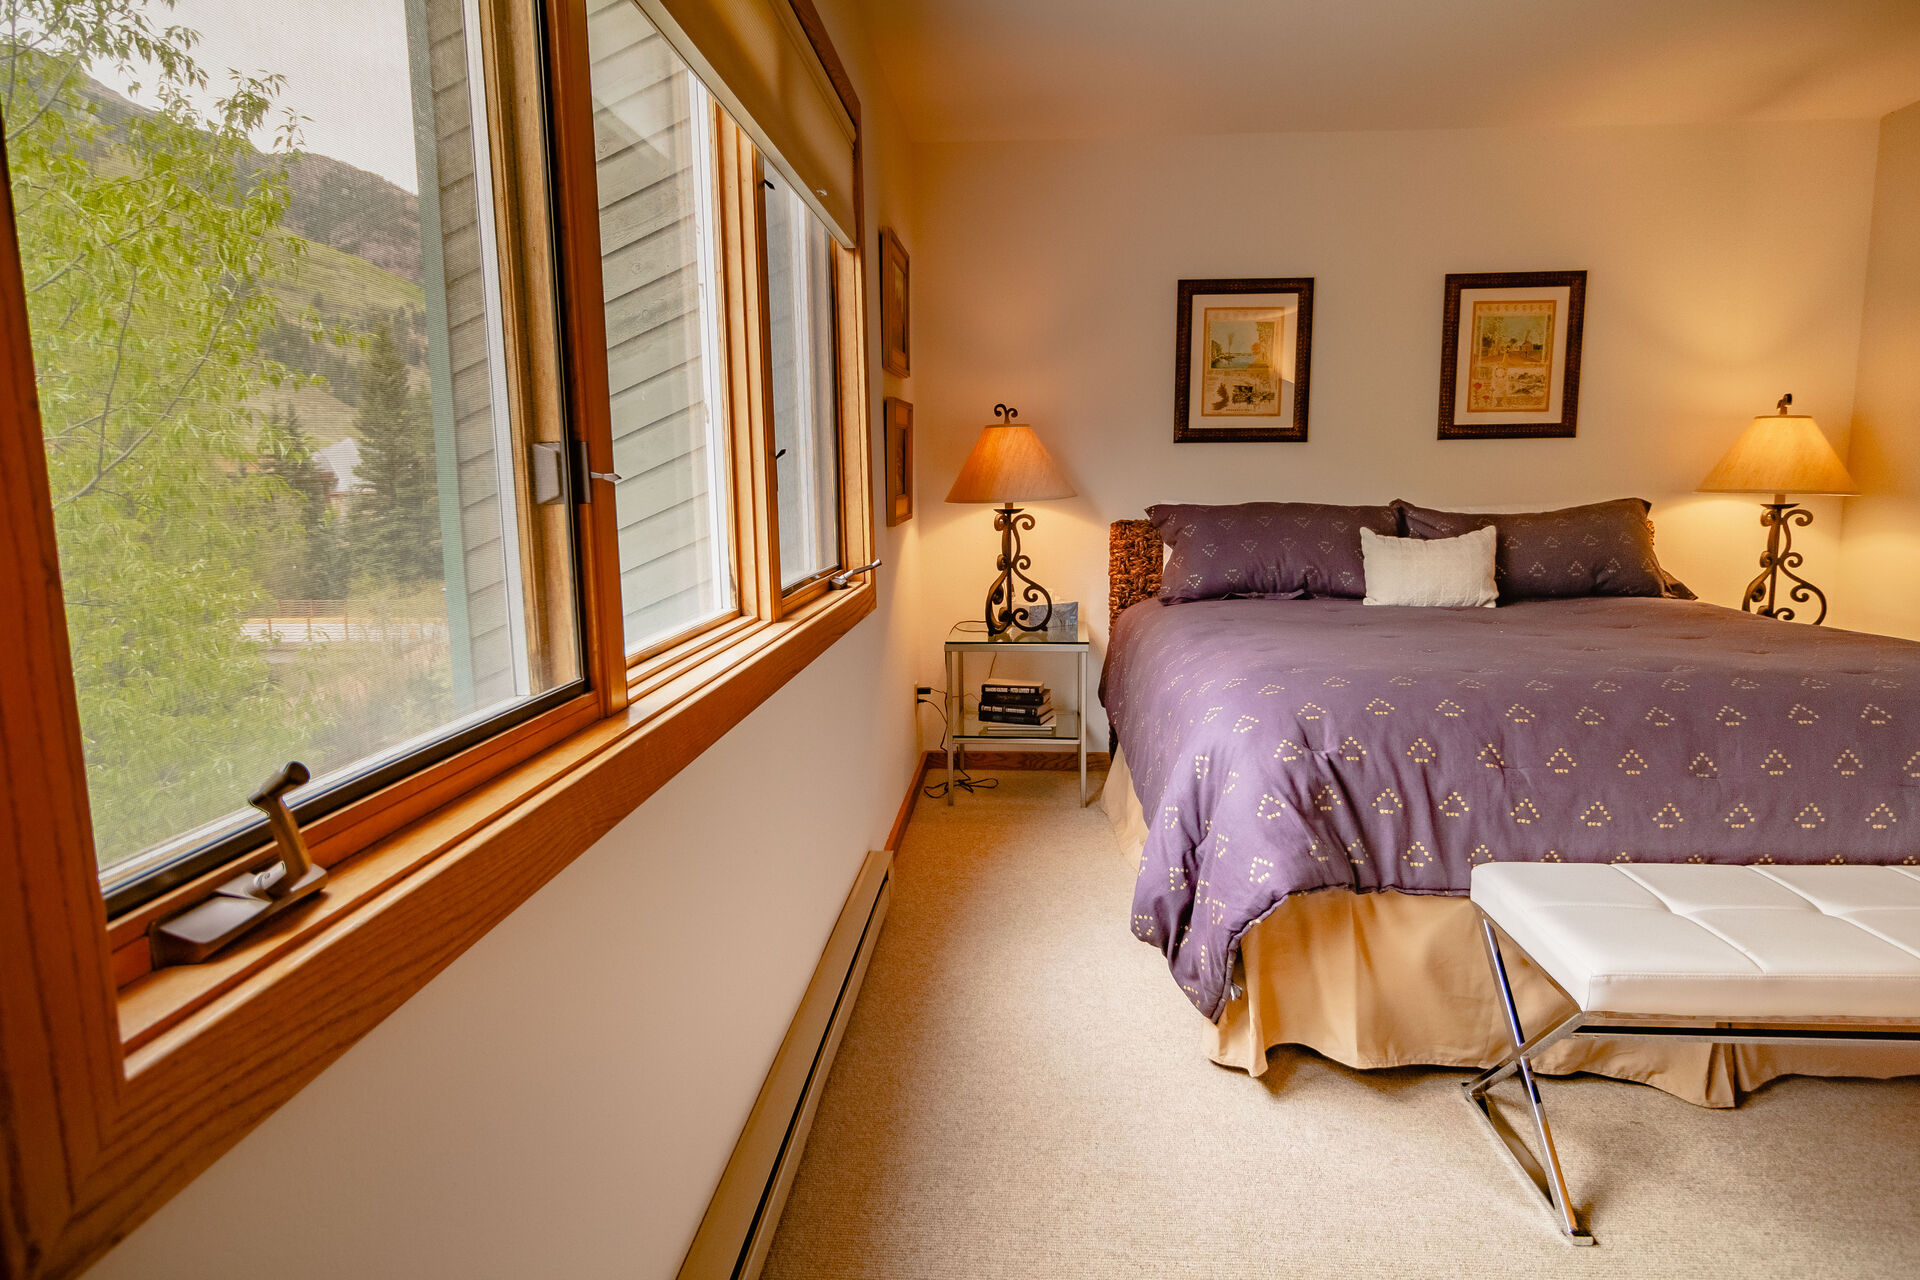 Bedroom with Large Windows and Views of the Forest at Riversdie D203